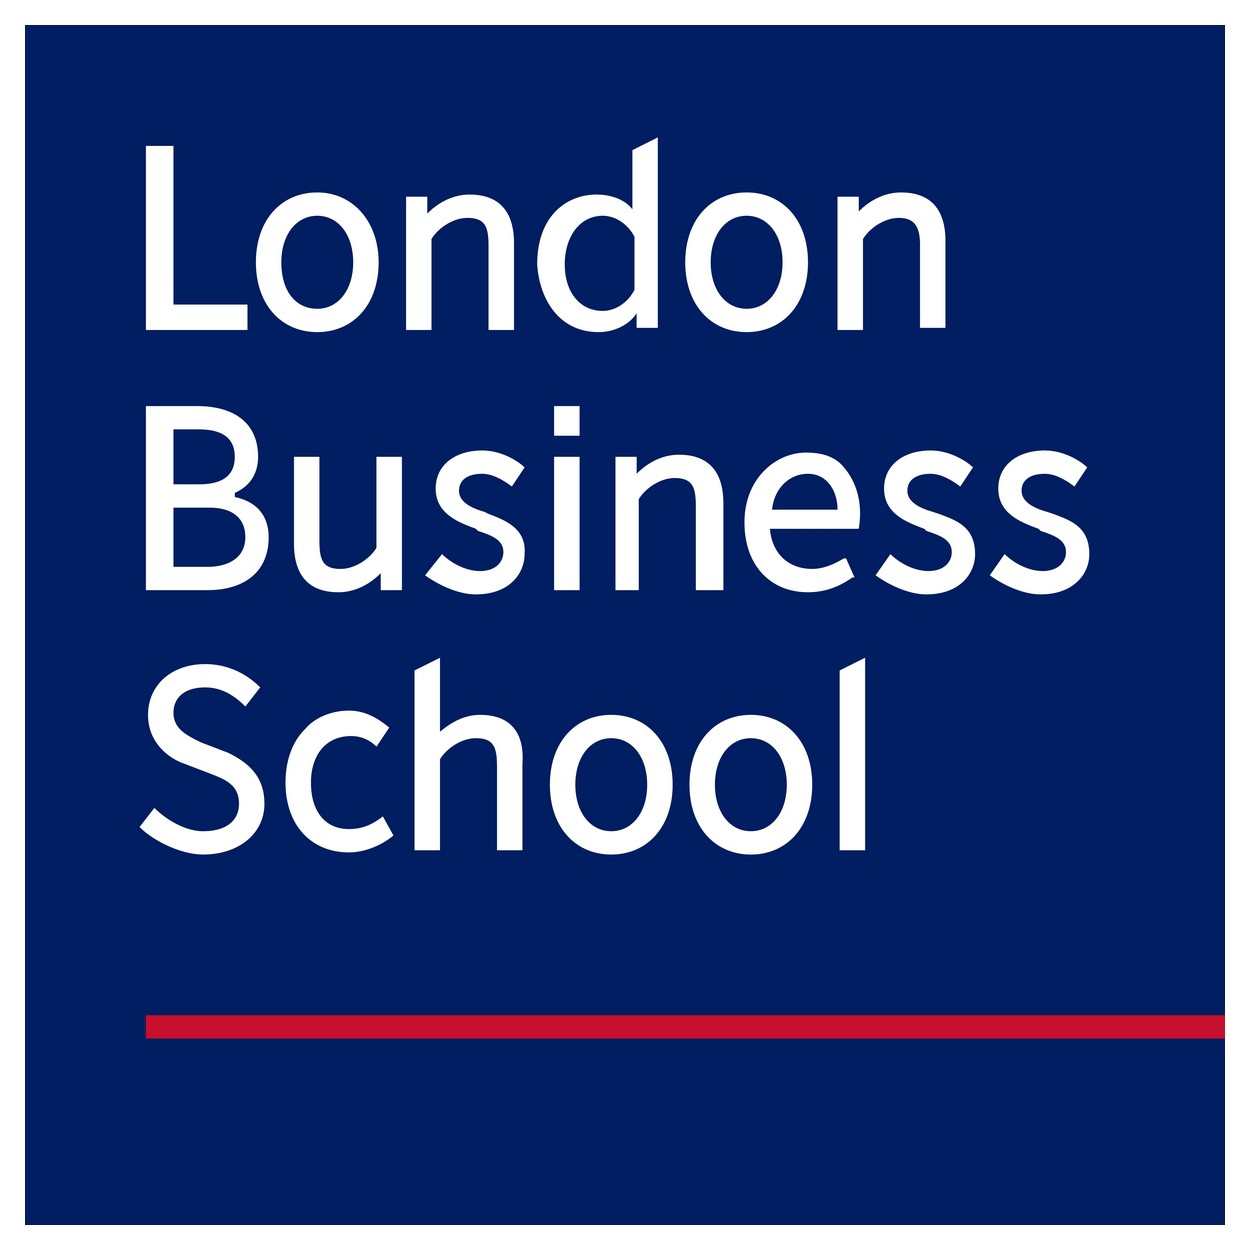 London Business School Logo   LBS png